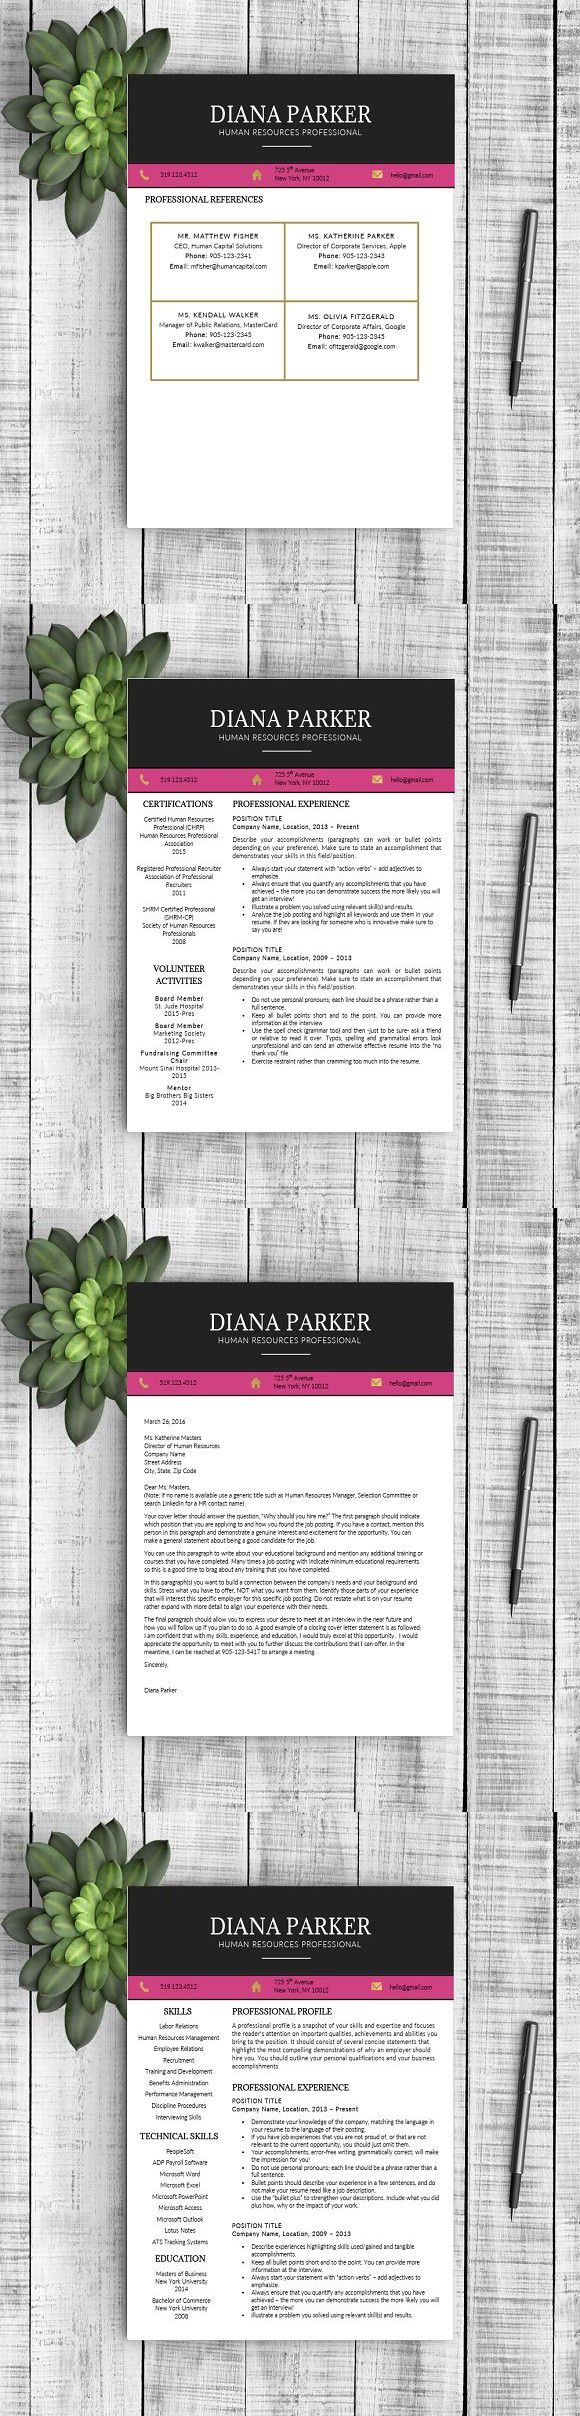 Resume & Cover Letter Diana resume resumes Cover